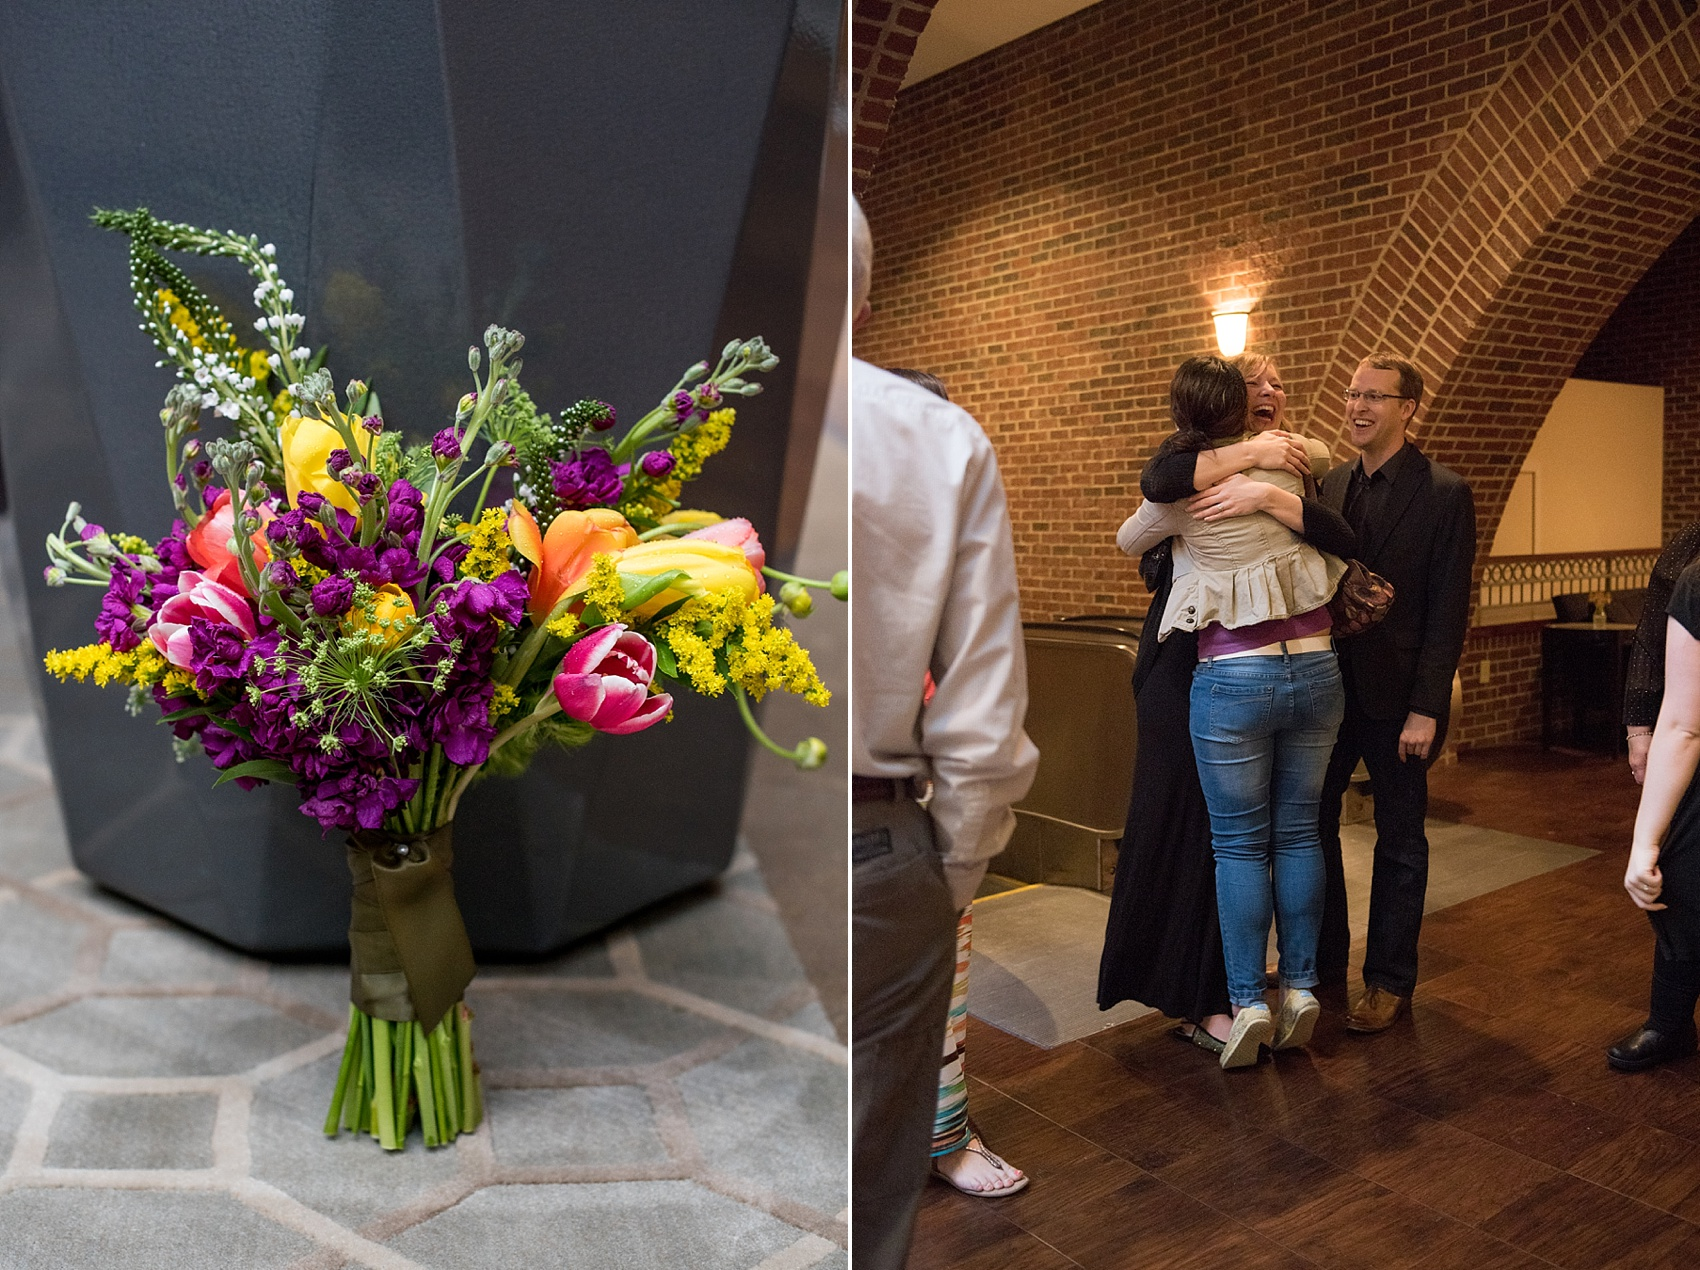 Raleigh wedding photographer, Mikkel Paige Photography, captures downtown #proposal. Flowers by Eclectic Sage.